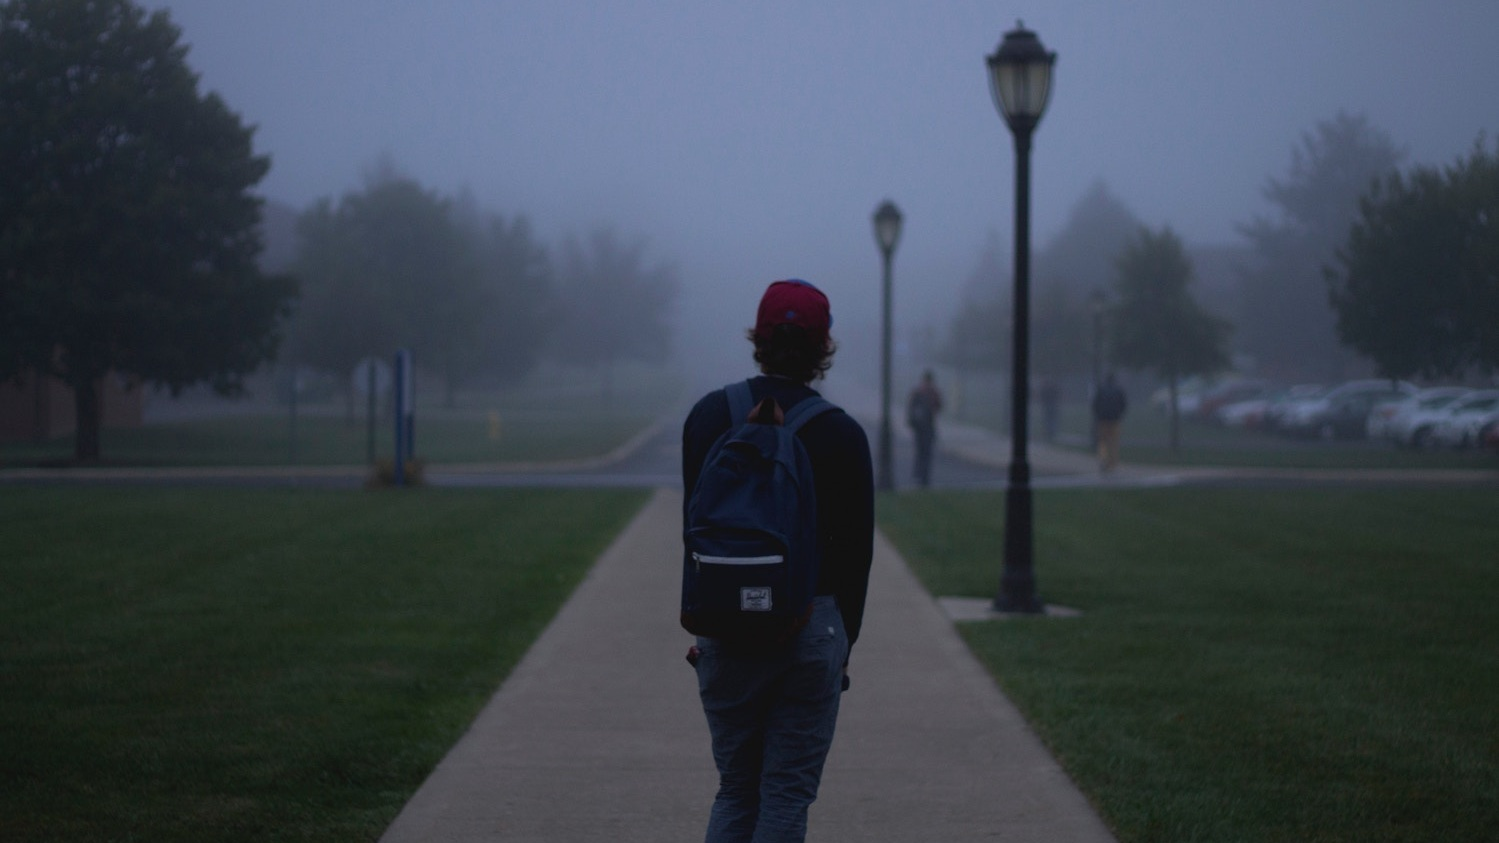 A college student on a misty sidewalk